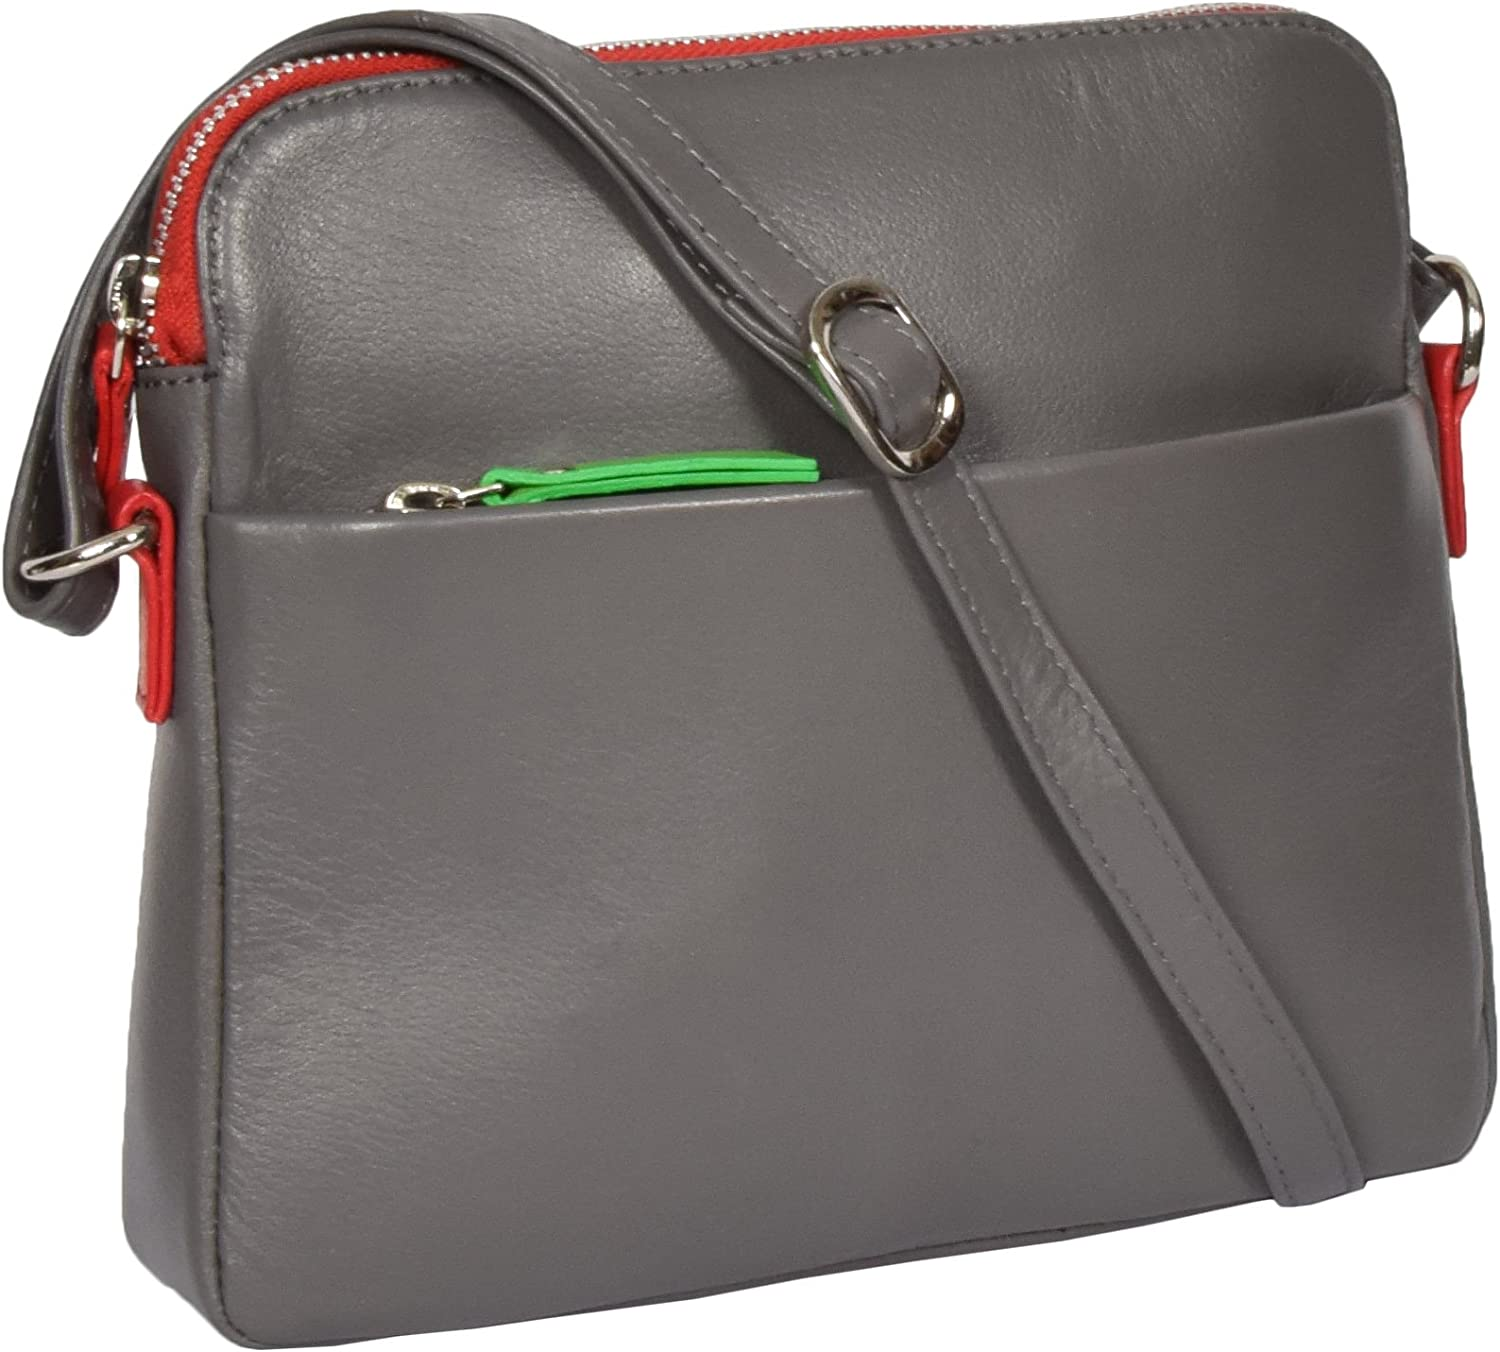 A1 FASHION GOODS Womens Soft Leather Cross Body Bag Grey Zip Top Messenger Sling Shoulder Bag Polly